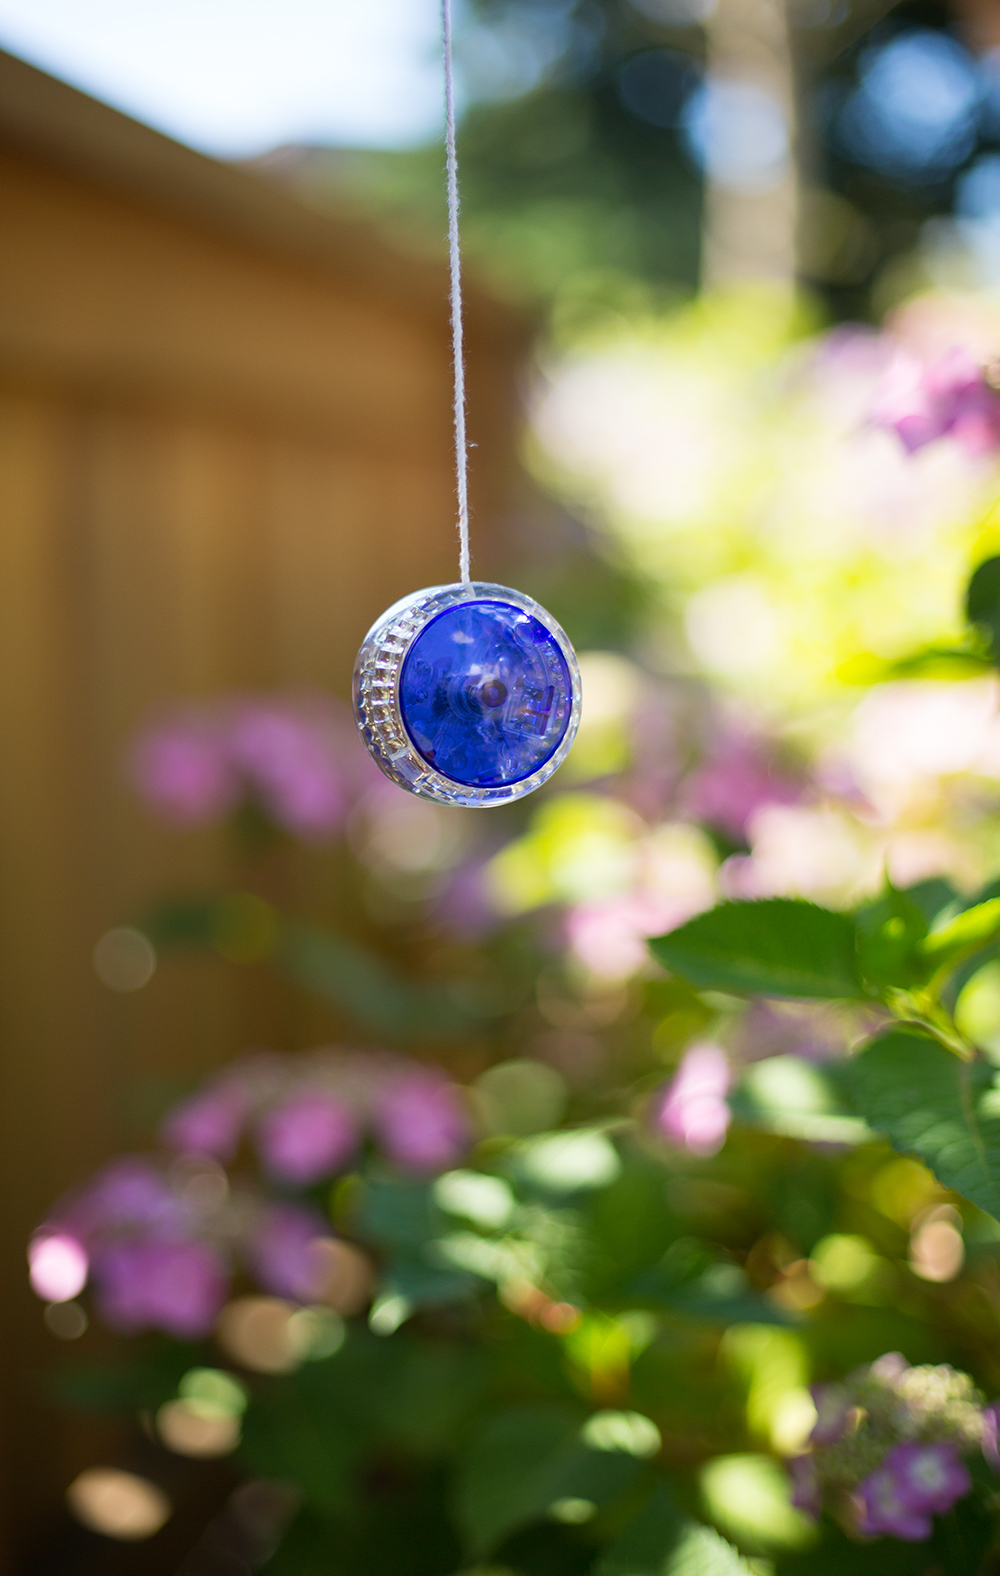 yoyo treasures from arcade hanging from tree